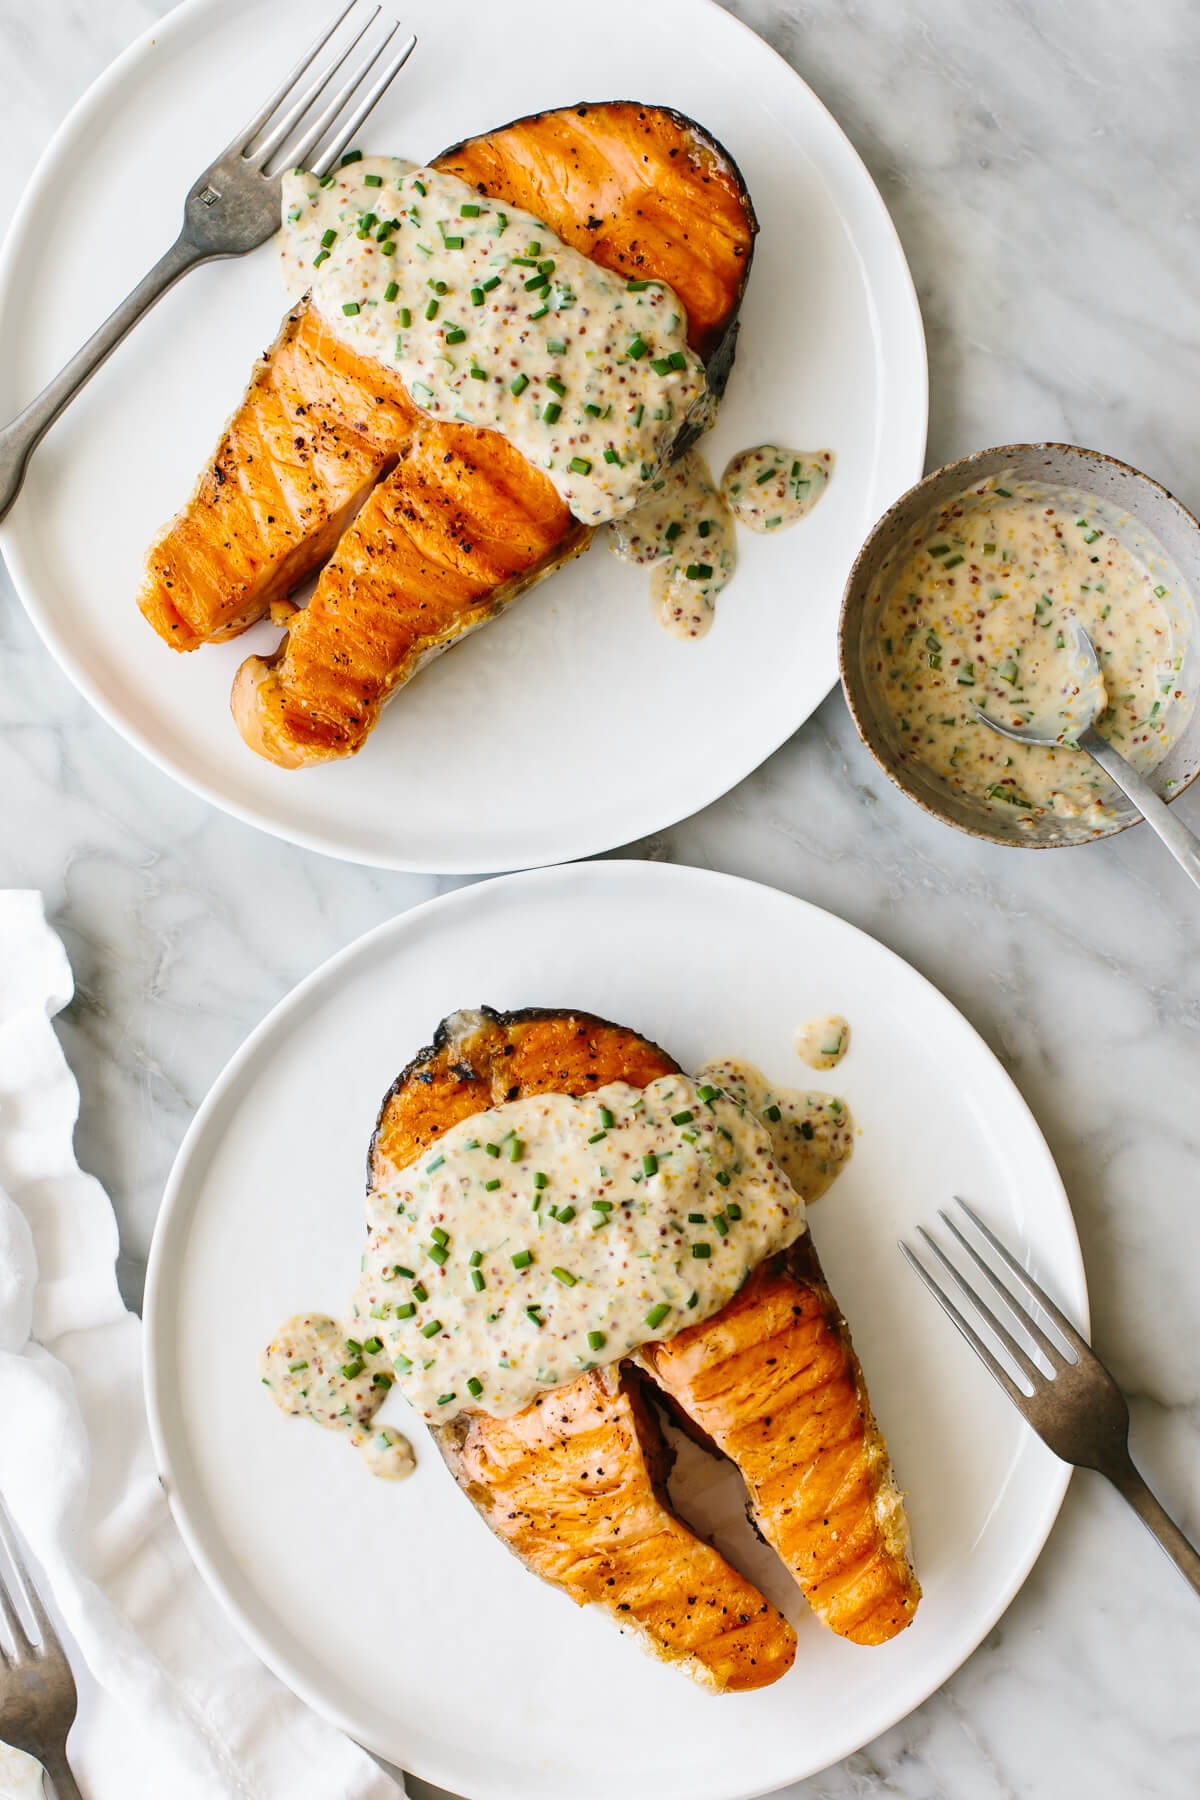 Grilled salmon steaks on two white plates